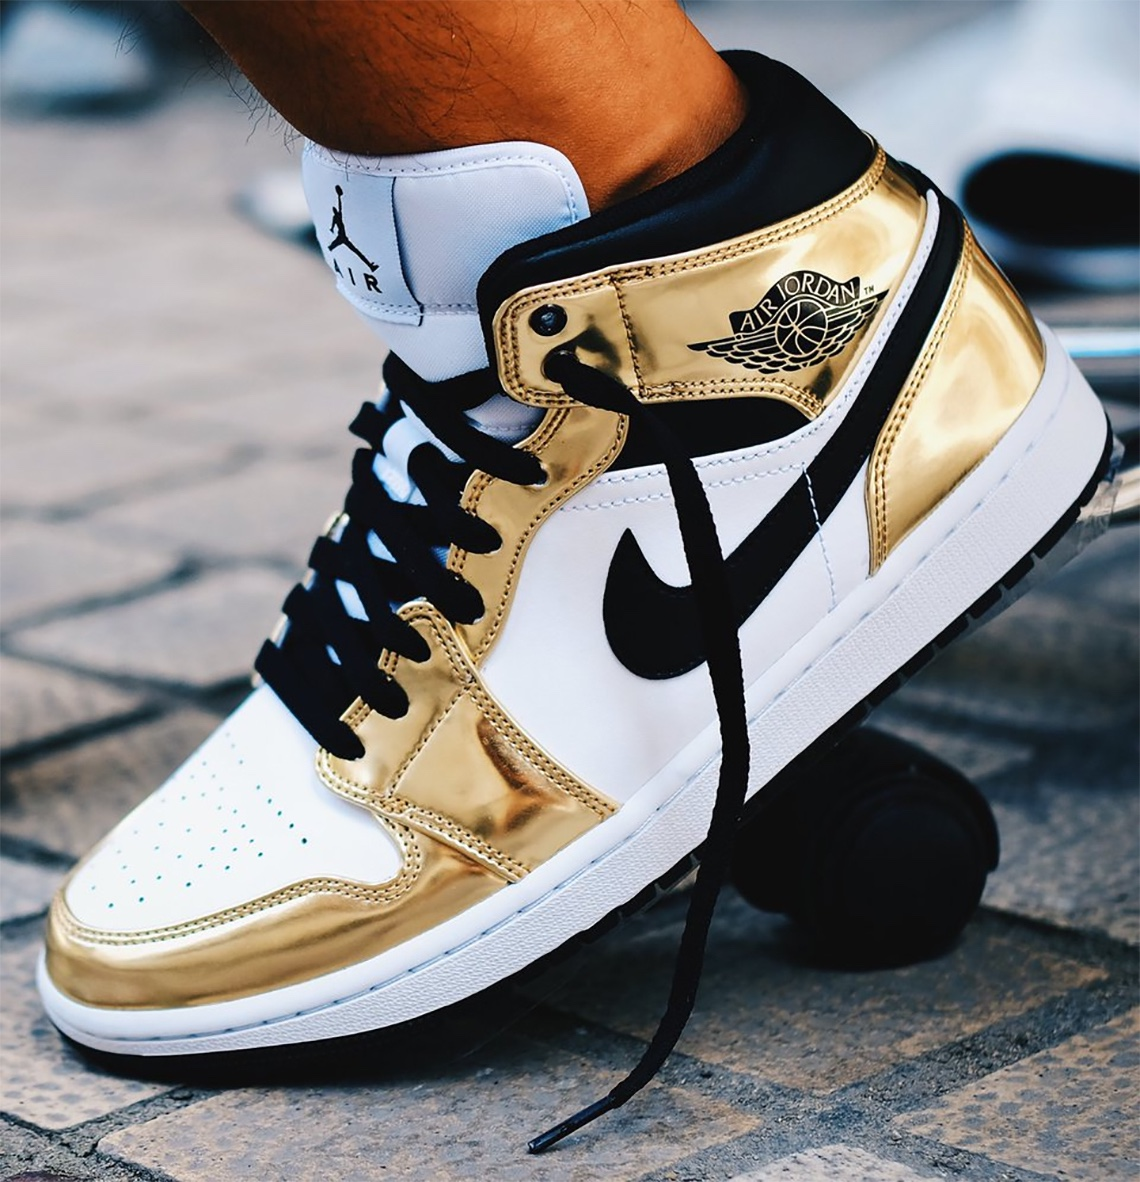 Air Jordan 1 Mid Metallic Gold prezzo 125€